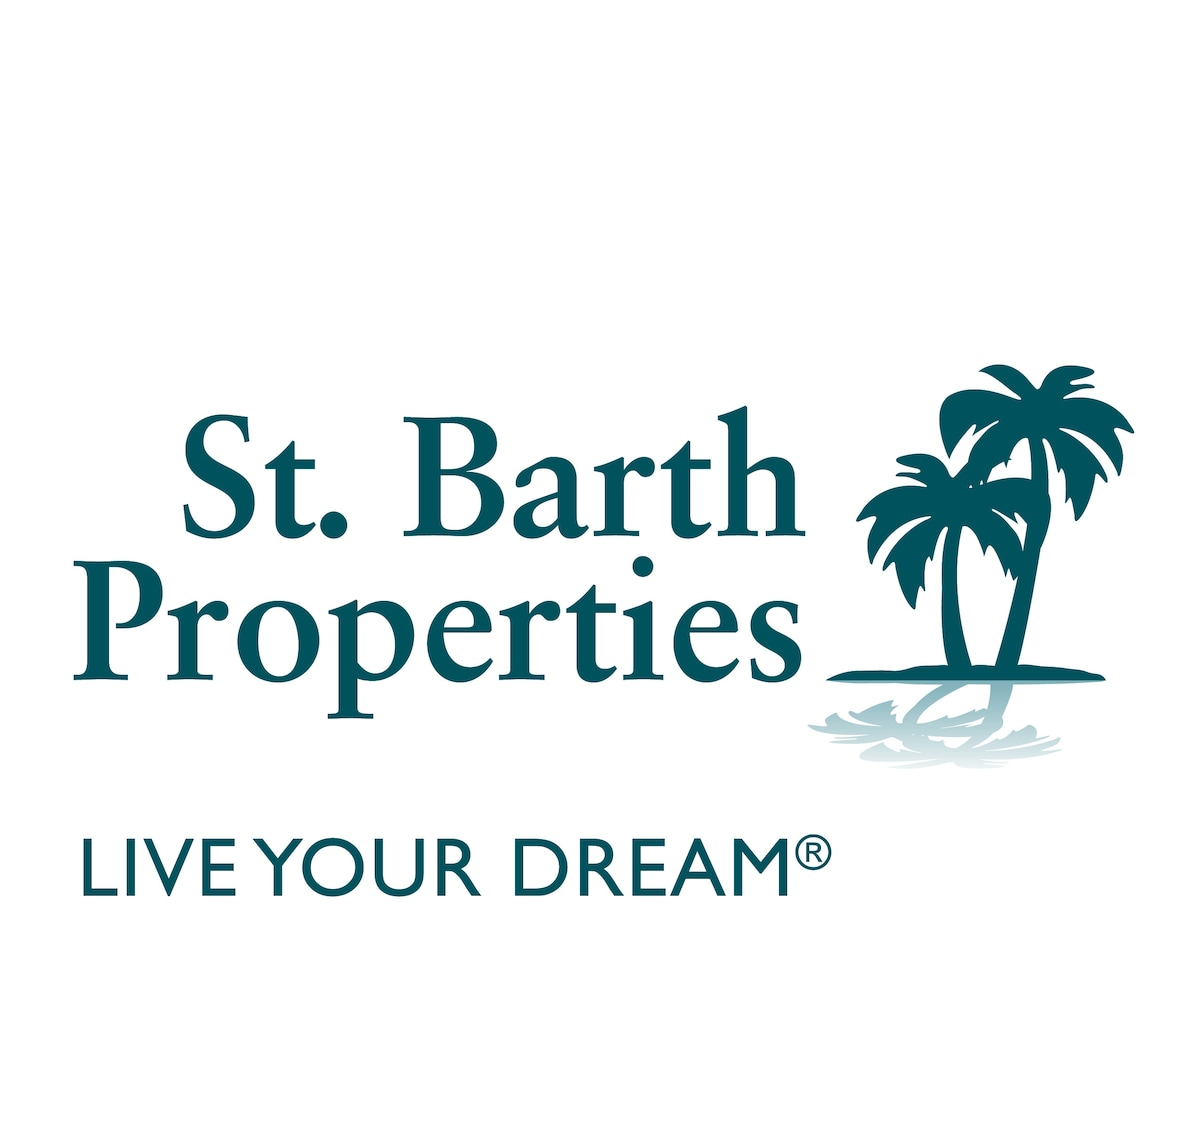 We are St Barth! Since 1989 we have been orchestra